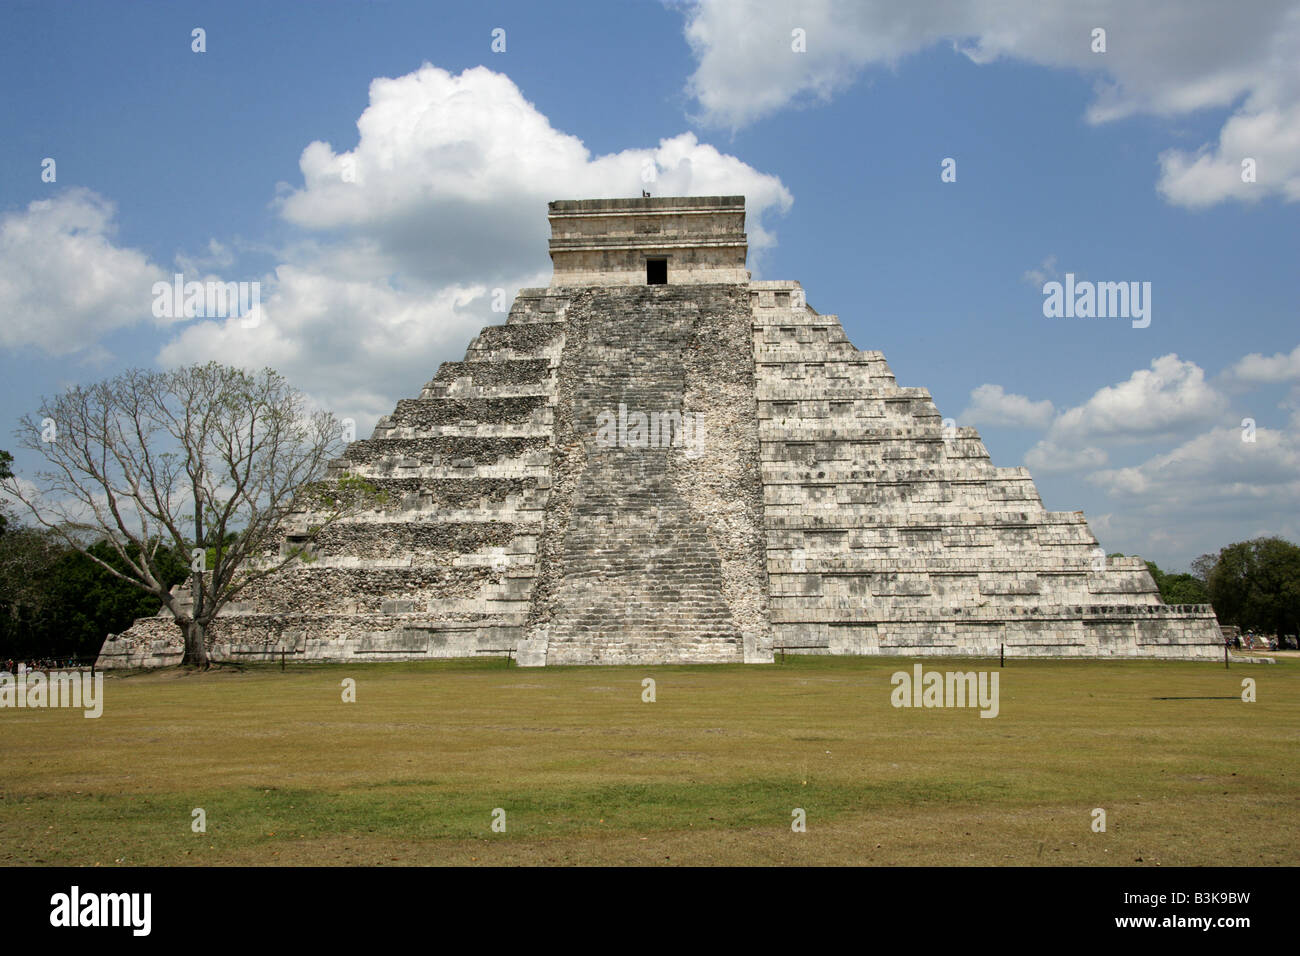 The Castle Pyramid (El Castillo Pyramid) or Temple of Kukulcan, Chichen Itza Archaeological Site, Chichen Itza, Stock Photo